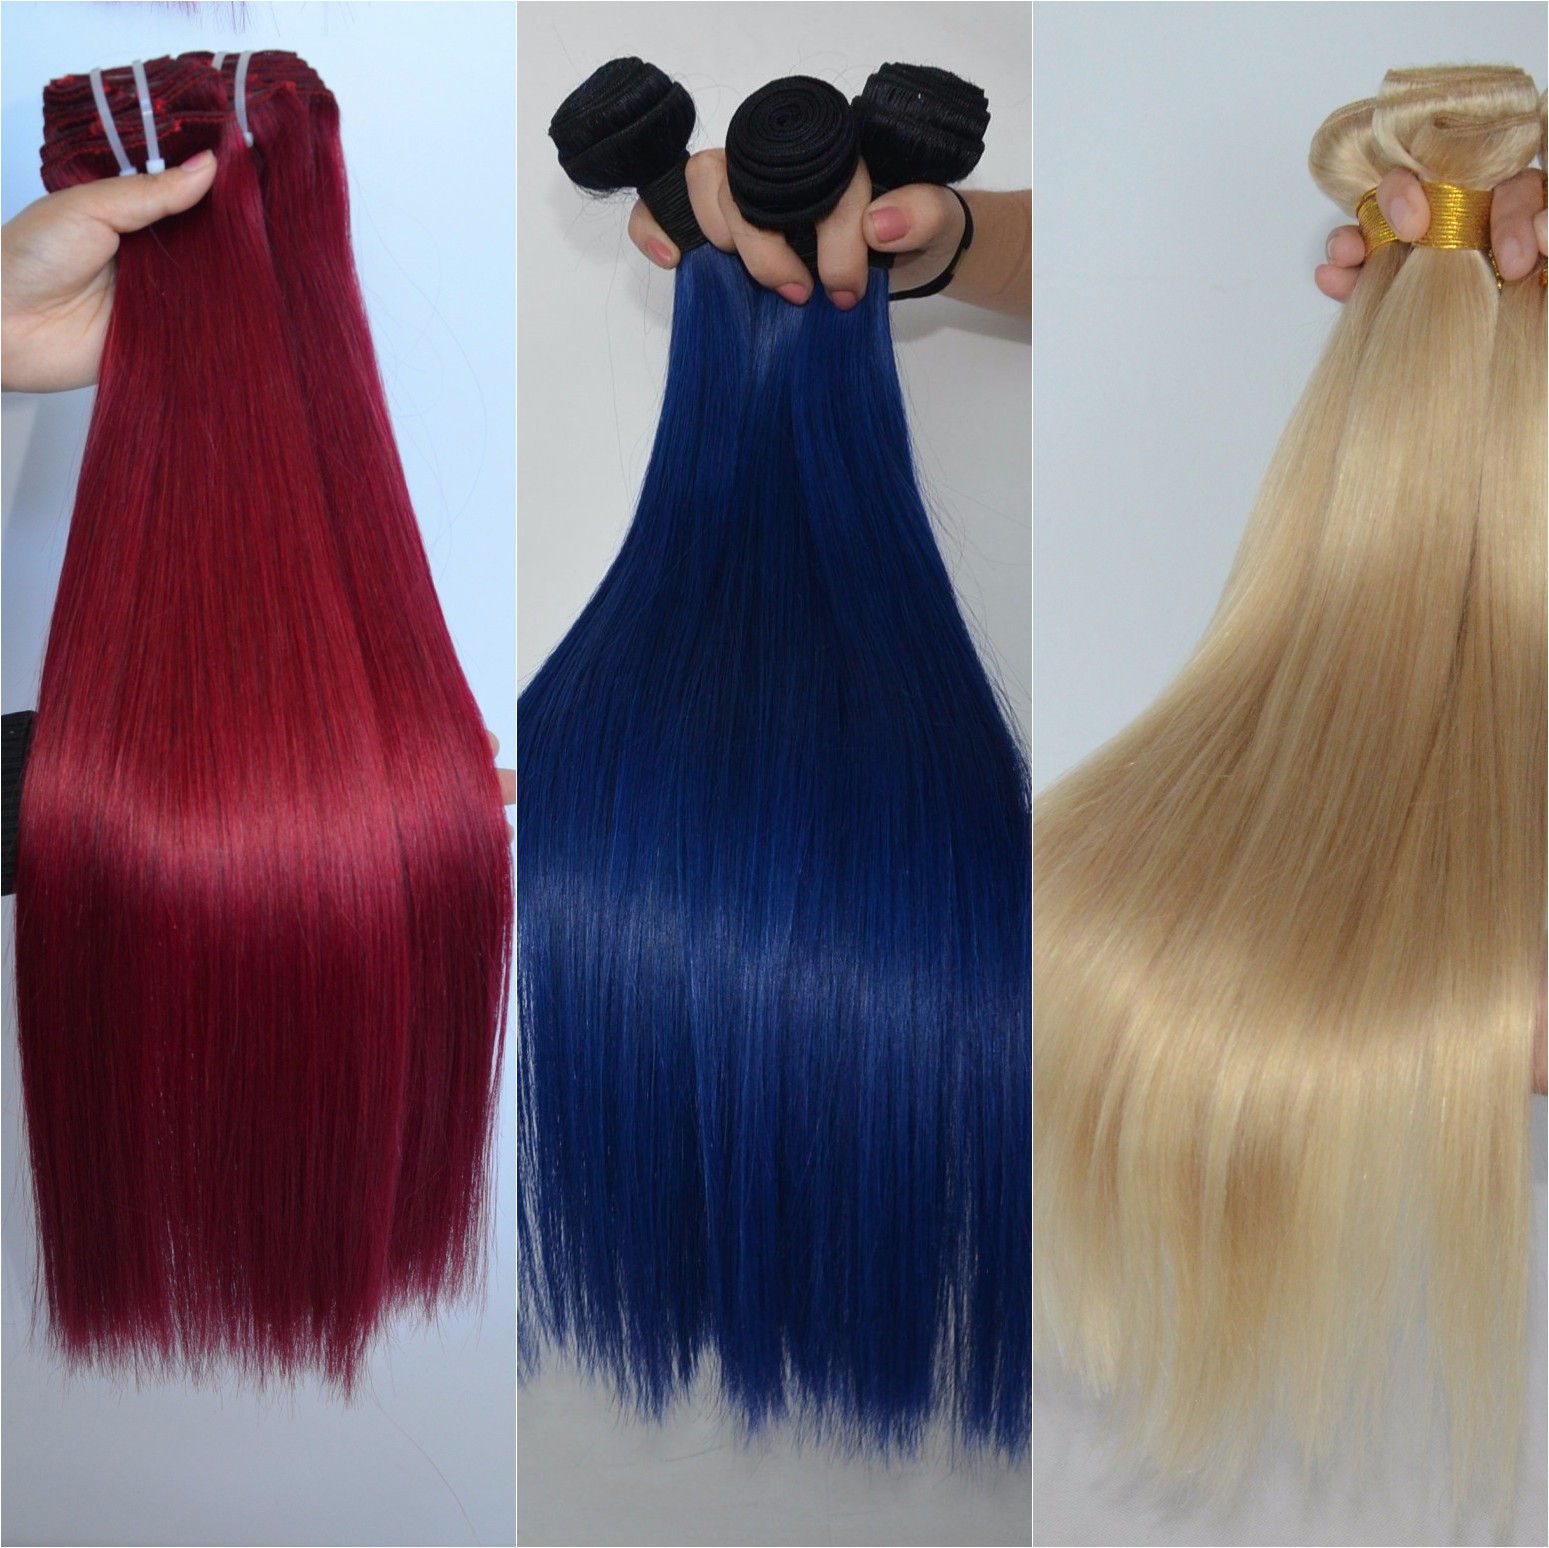 Colorful hair weave straight Brazilian hair bundles DL0013